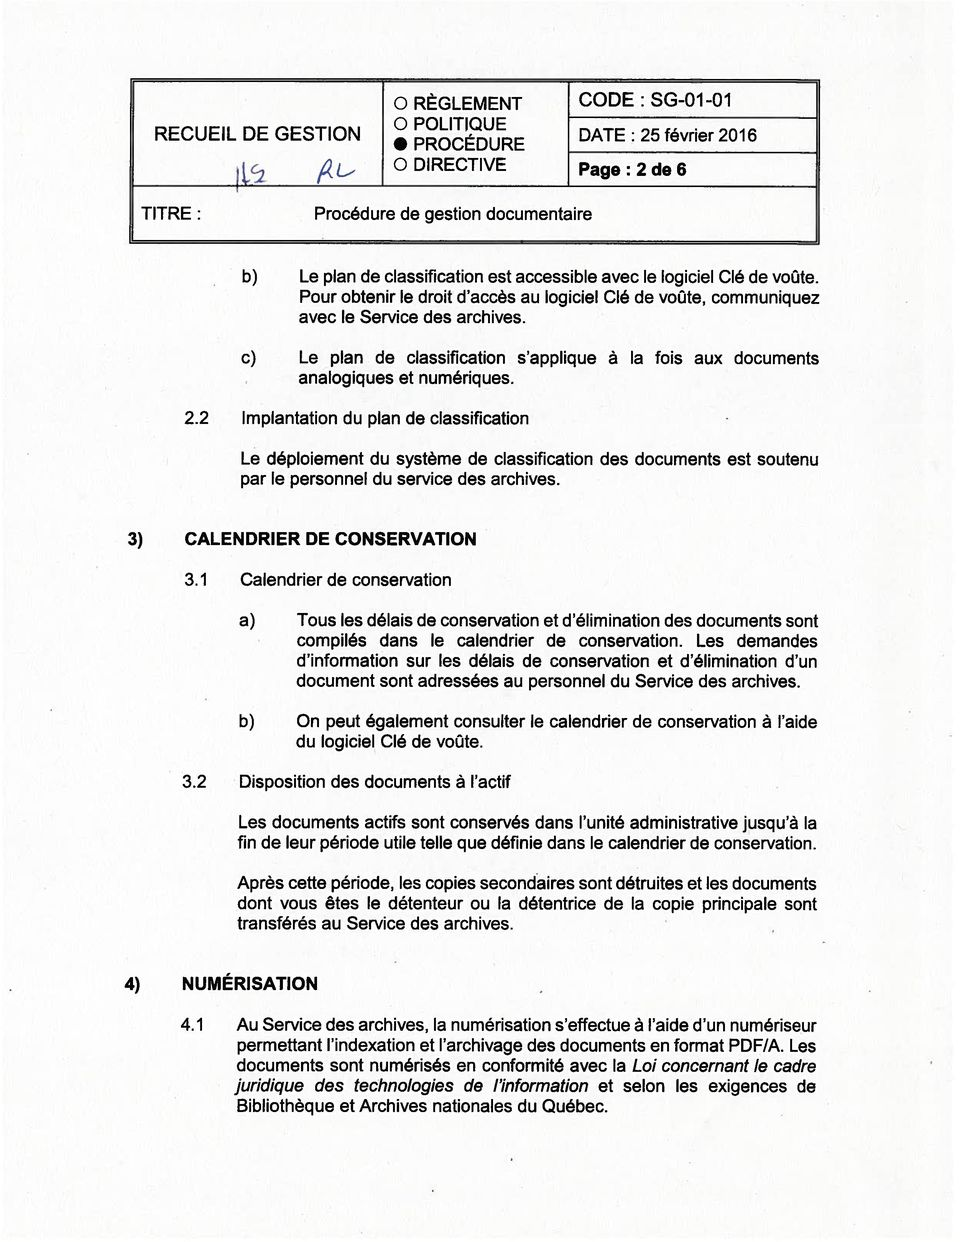 2 Implantation du plan de classification Le déploiement du système de classification des documents est soutenu par le personnel du service des archives. 3) CALENDRIER DE CONSERVATION 3.